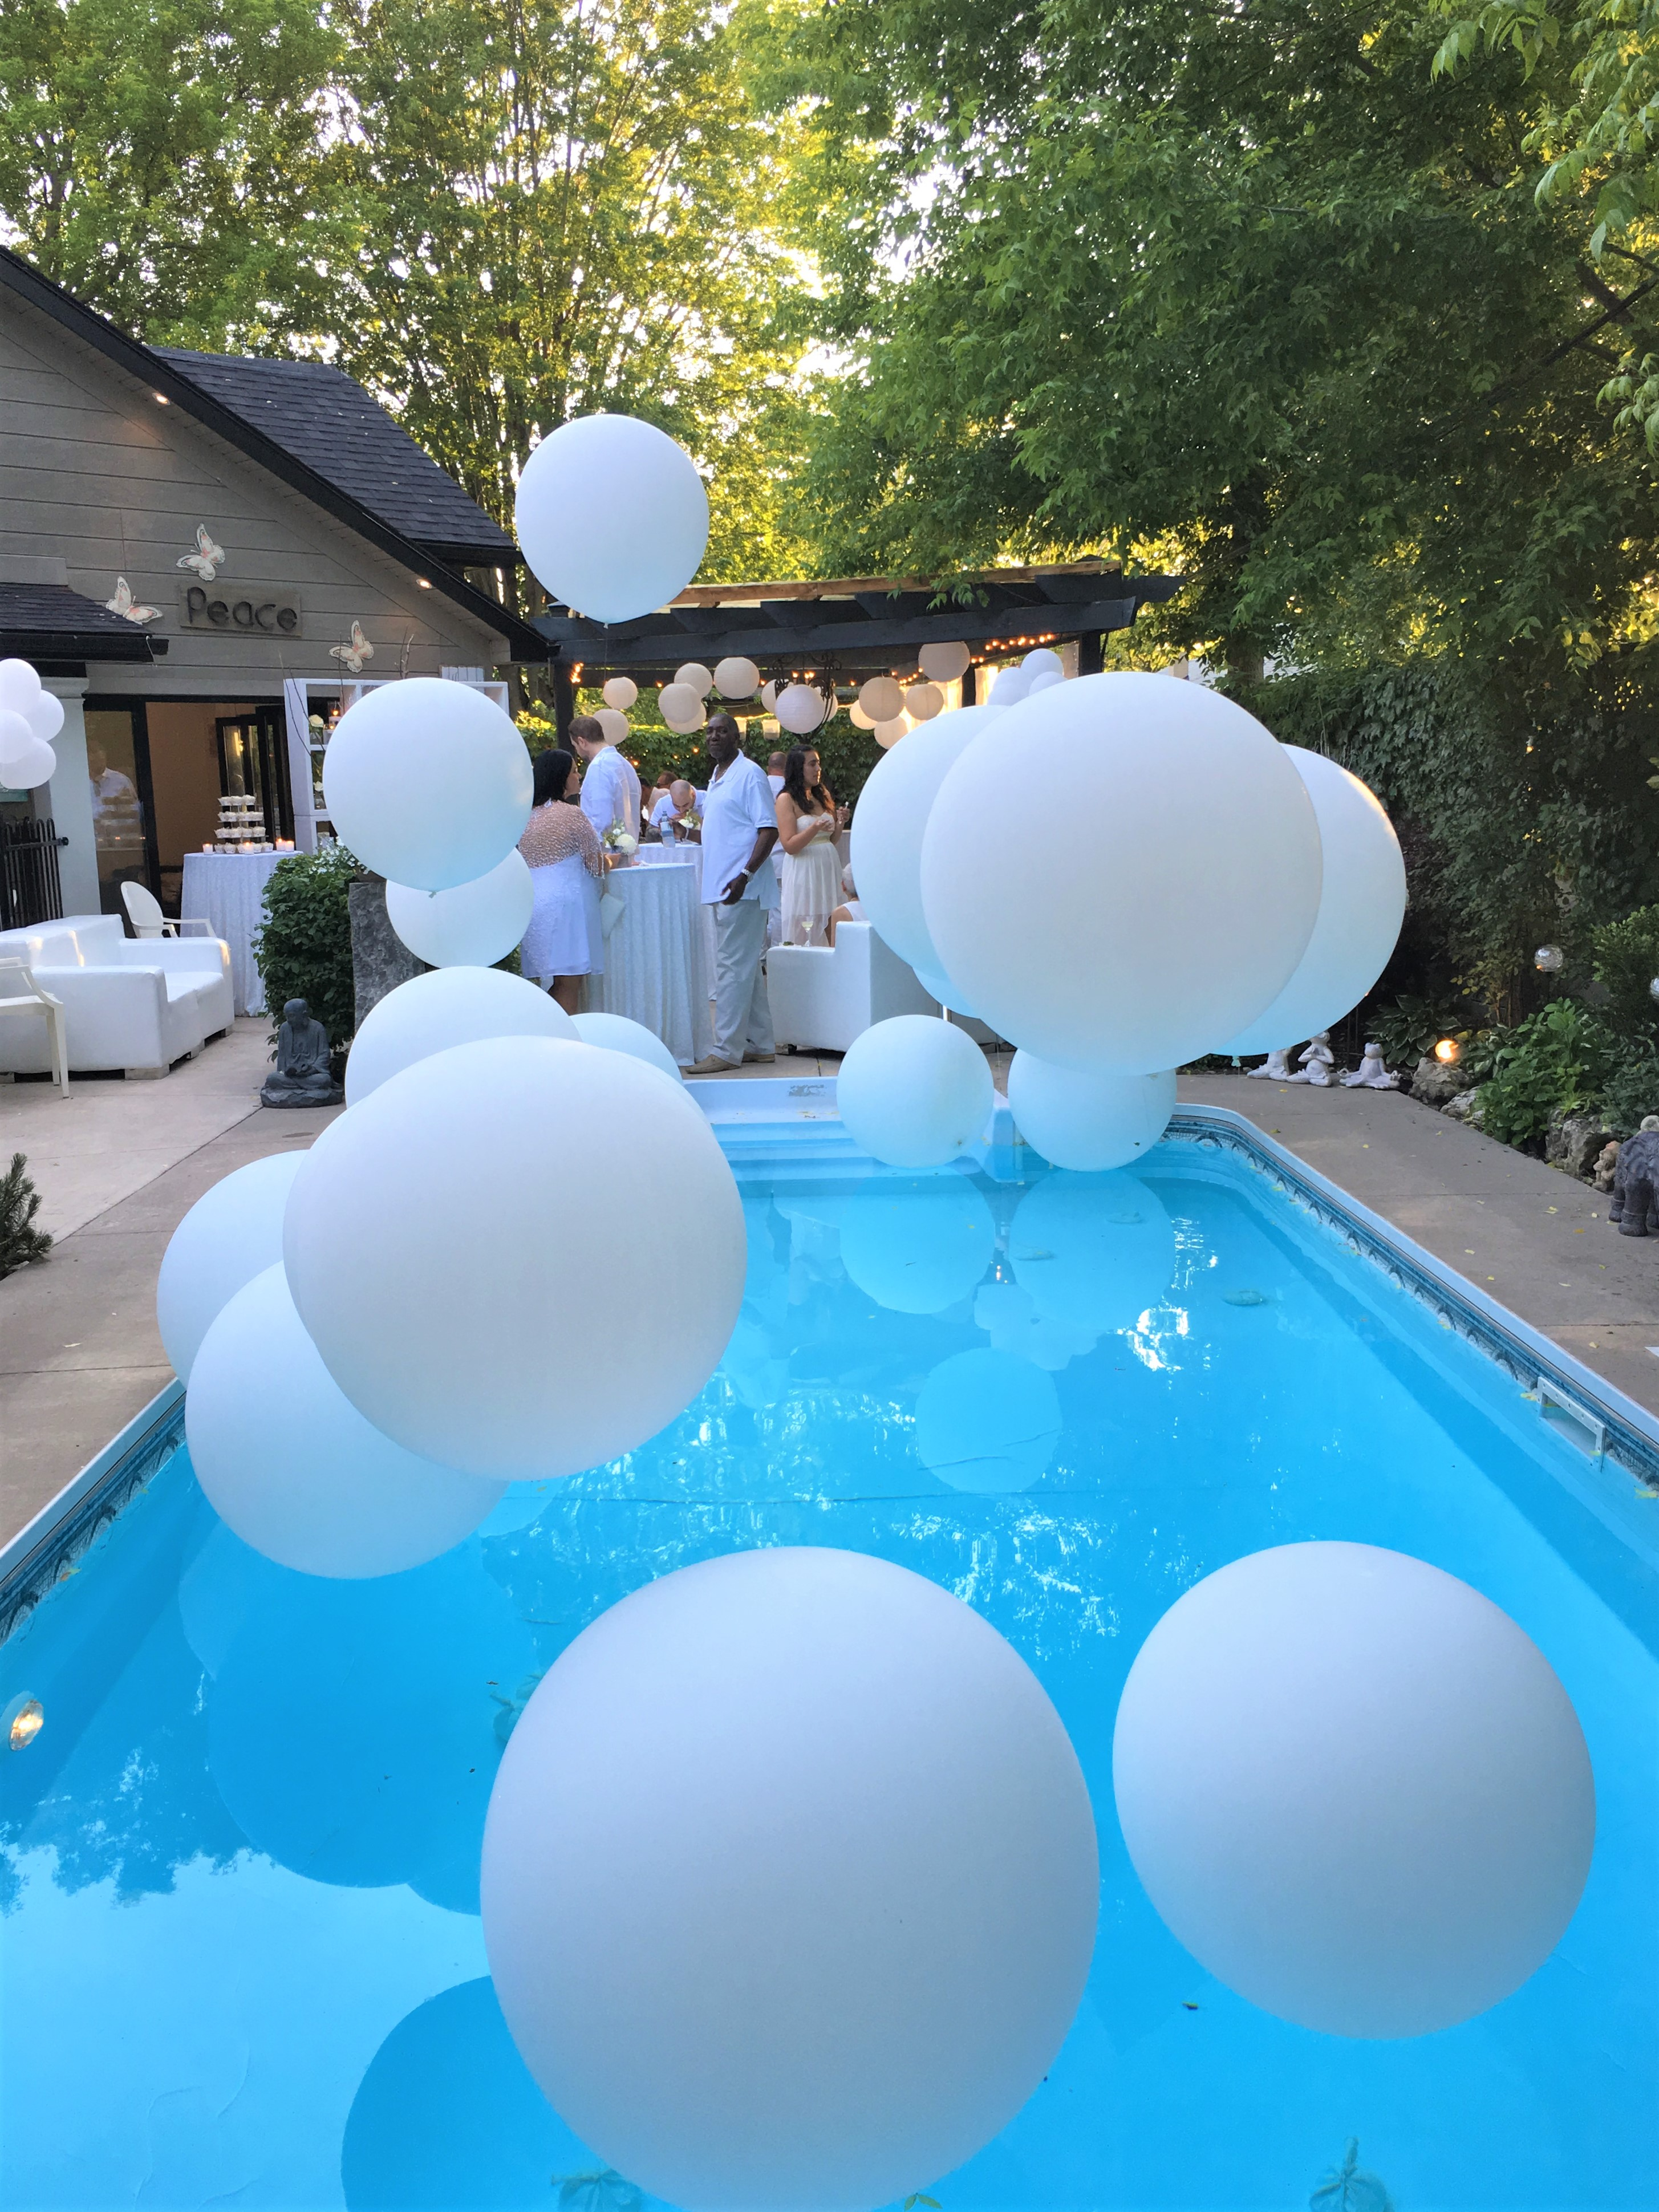 Her First Request Was To Decorate The Pool And Since Balloons Are All Craze Right Now We Knew That This Would Be Perfect For Added Chic Touch